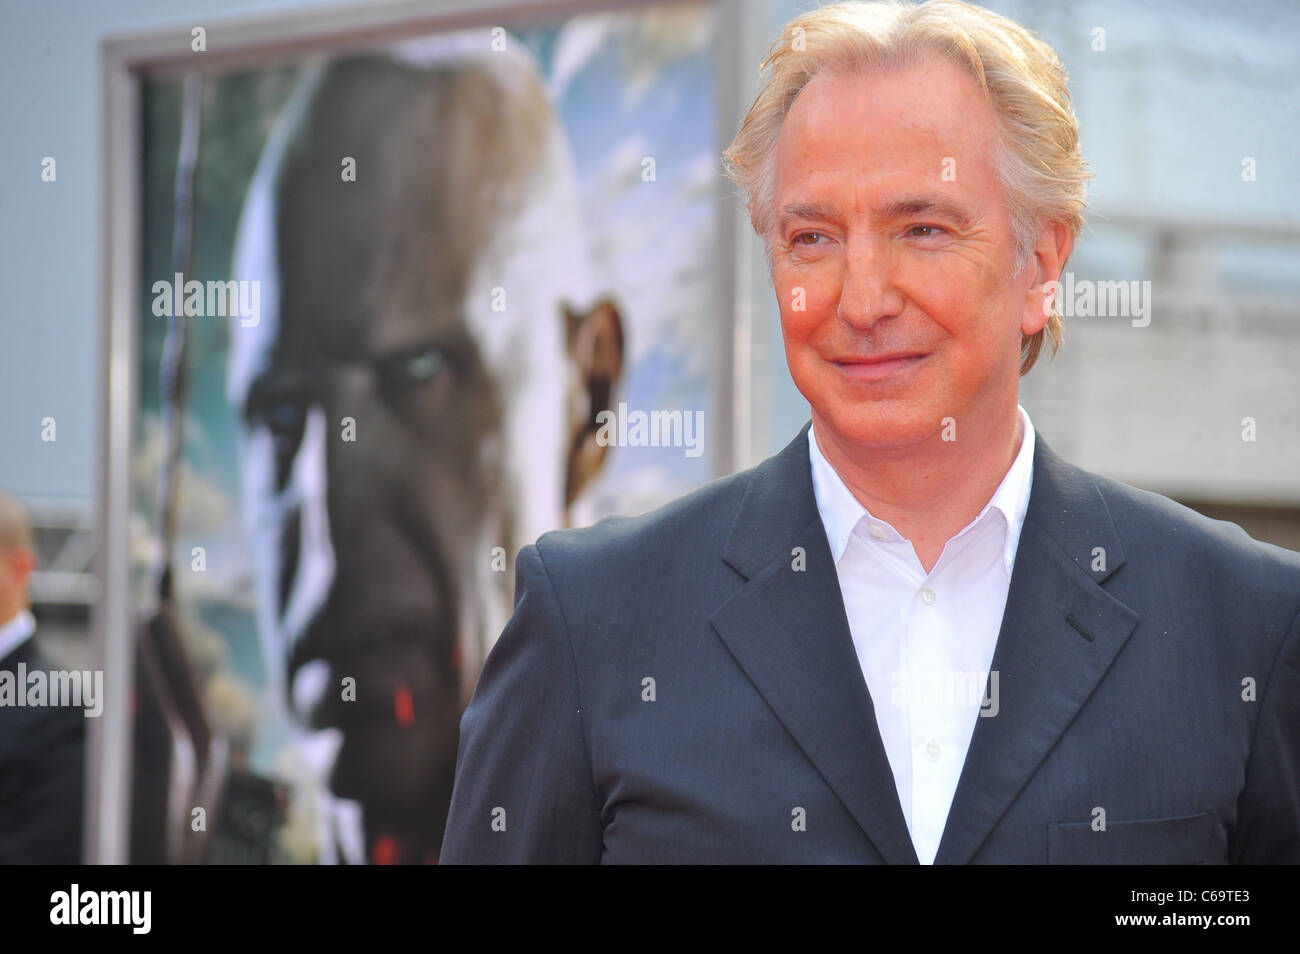 Alan Rickman at arrivals for Harry Potter and the Deathly Hallows - Part 2 North American Premiere, Avery Fisher - Stock Image